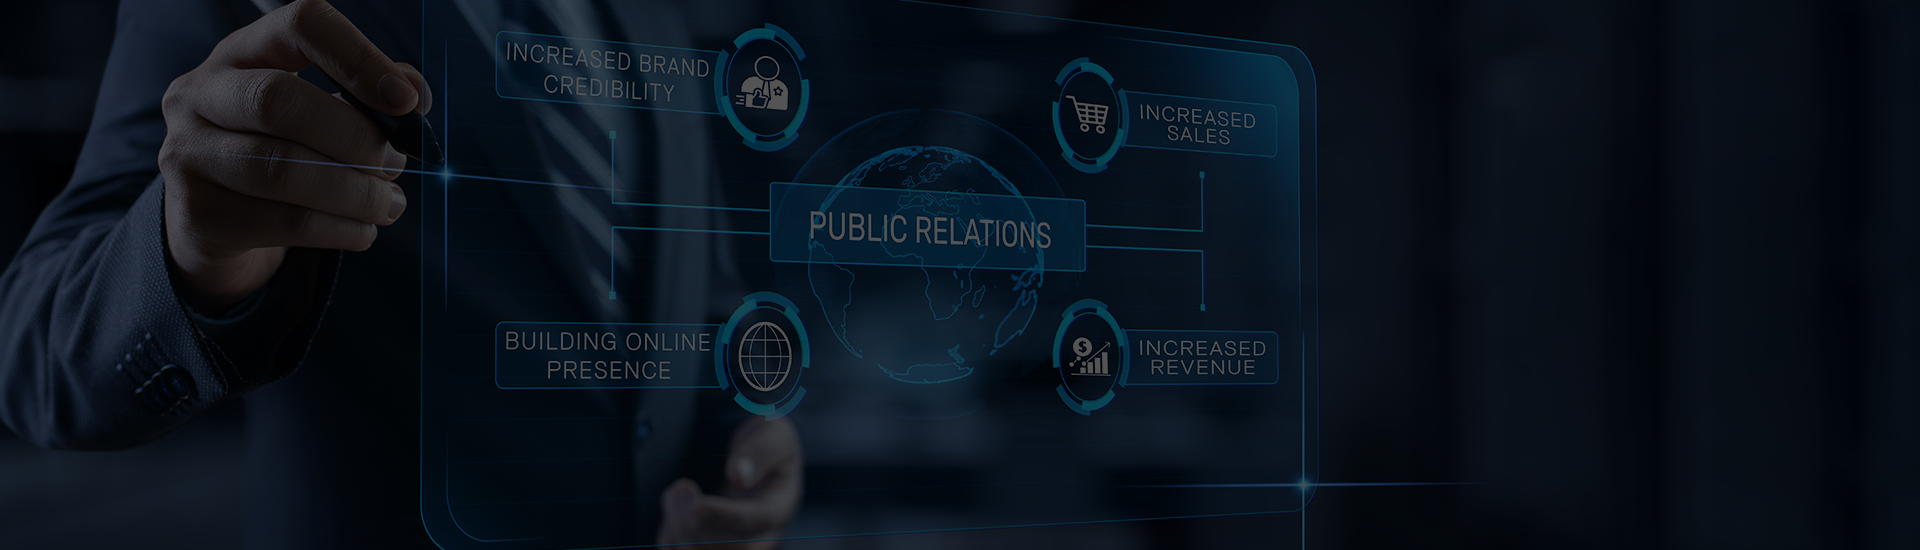 HERE IS HOW CORPORATES ARE TAKING ADVANTAGE OF MODERN PR METHODS